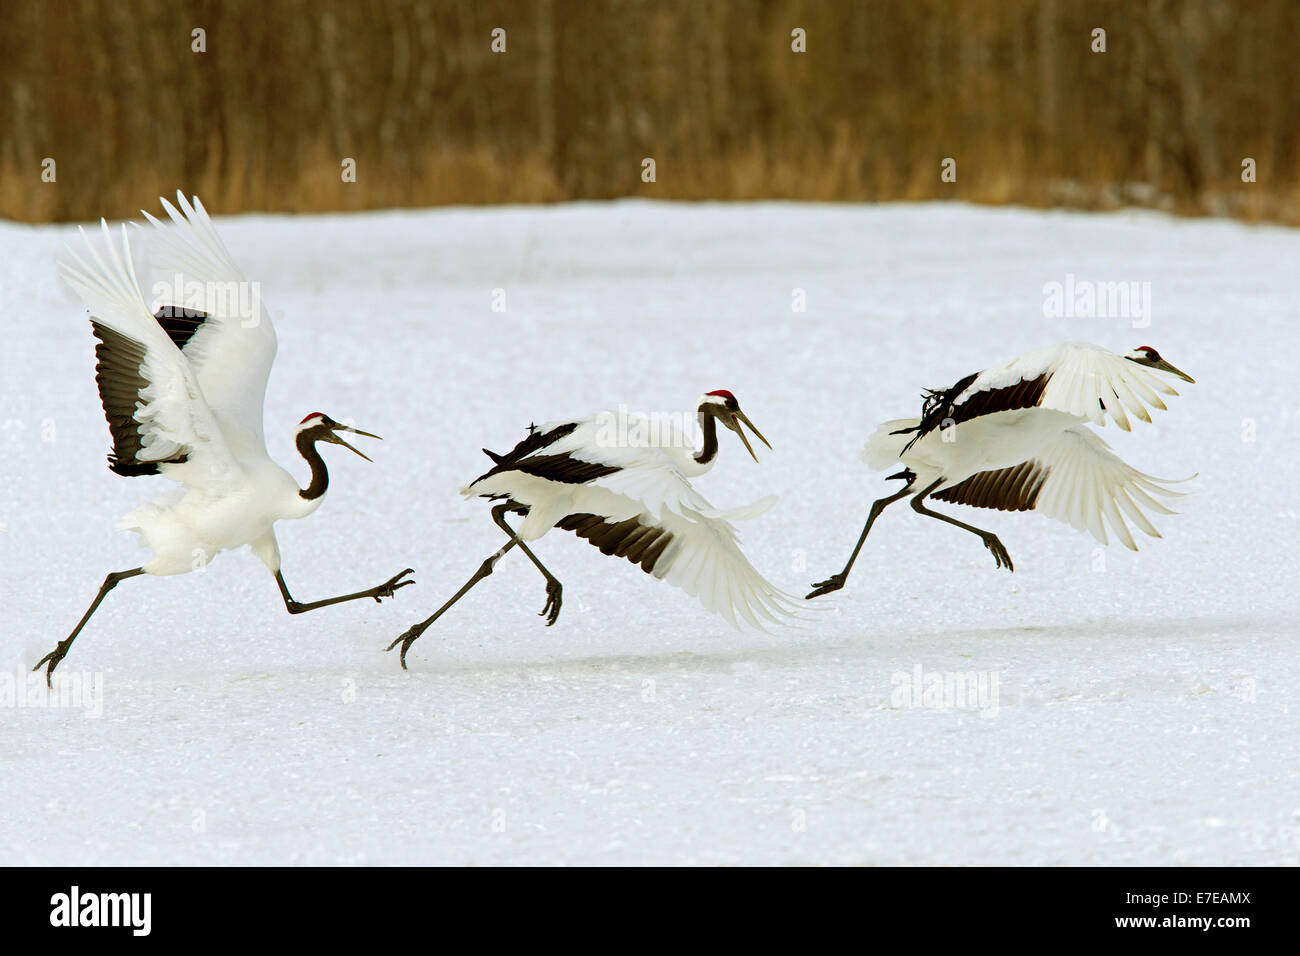 Red-crowned cranes taking off - Stock Image